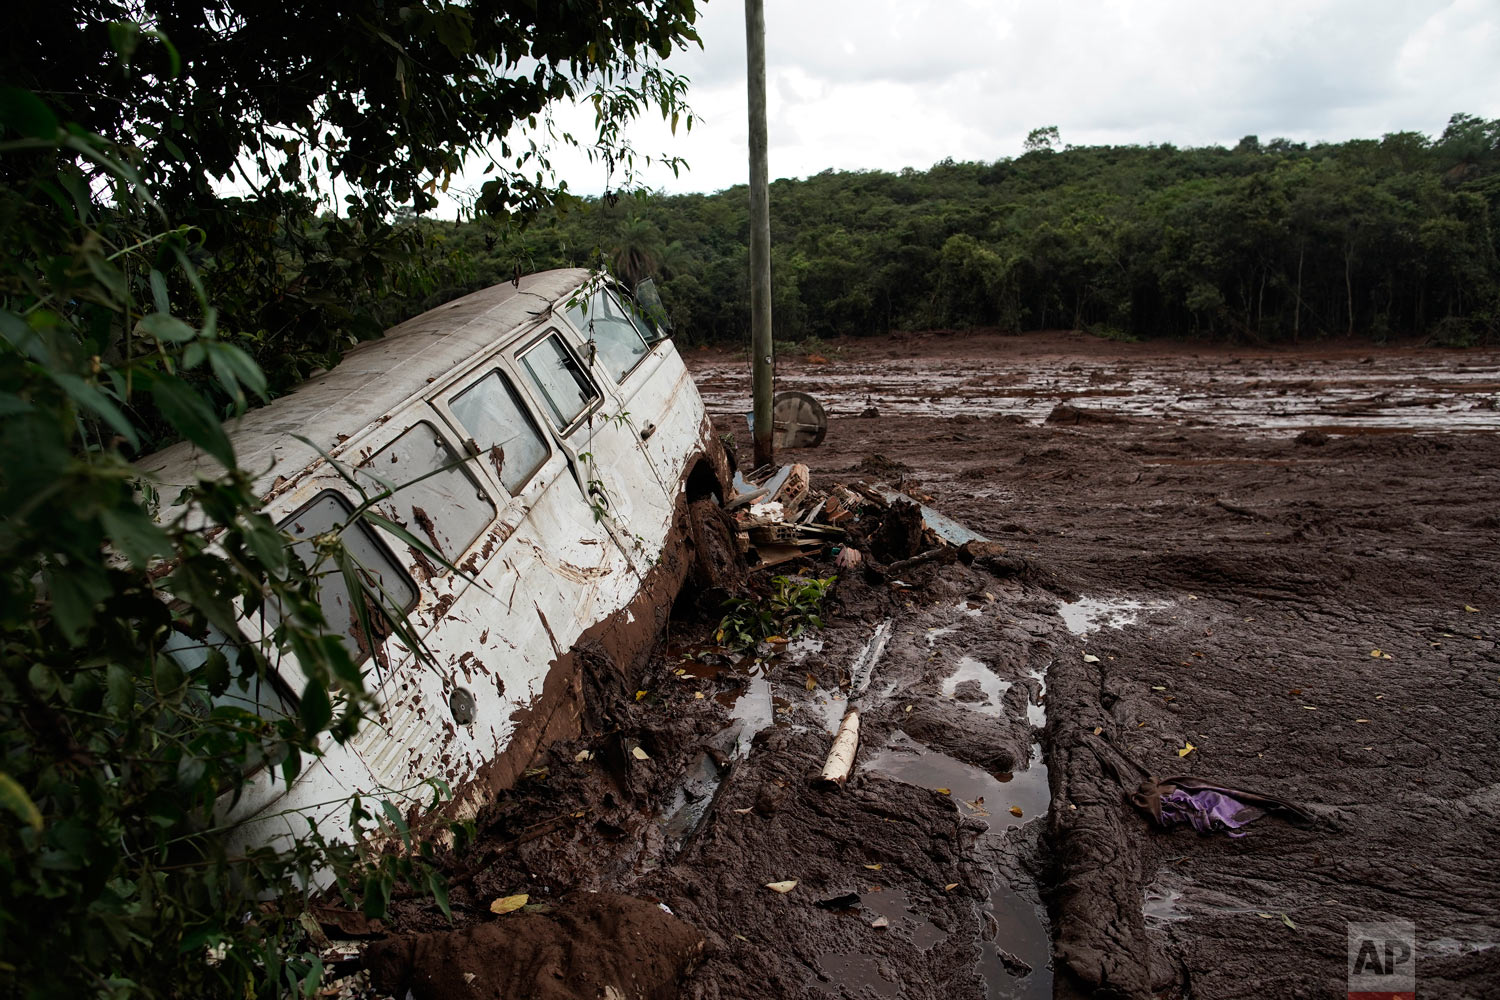 A van is half submerged in the mud after a Vale dam collapsed near Brumadinho, Brazil, Jan. 26, 2019. (AP Photo/Leo Correa)